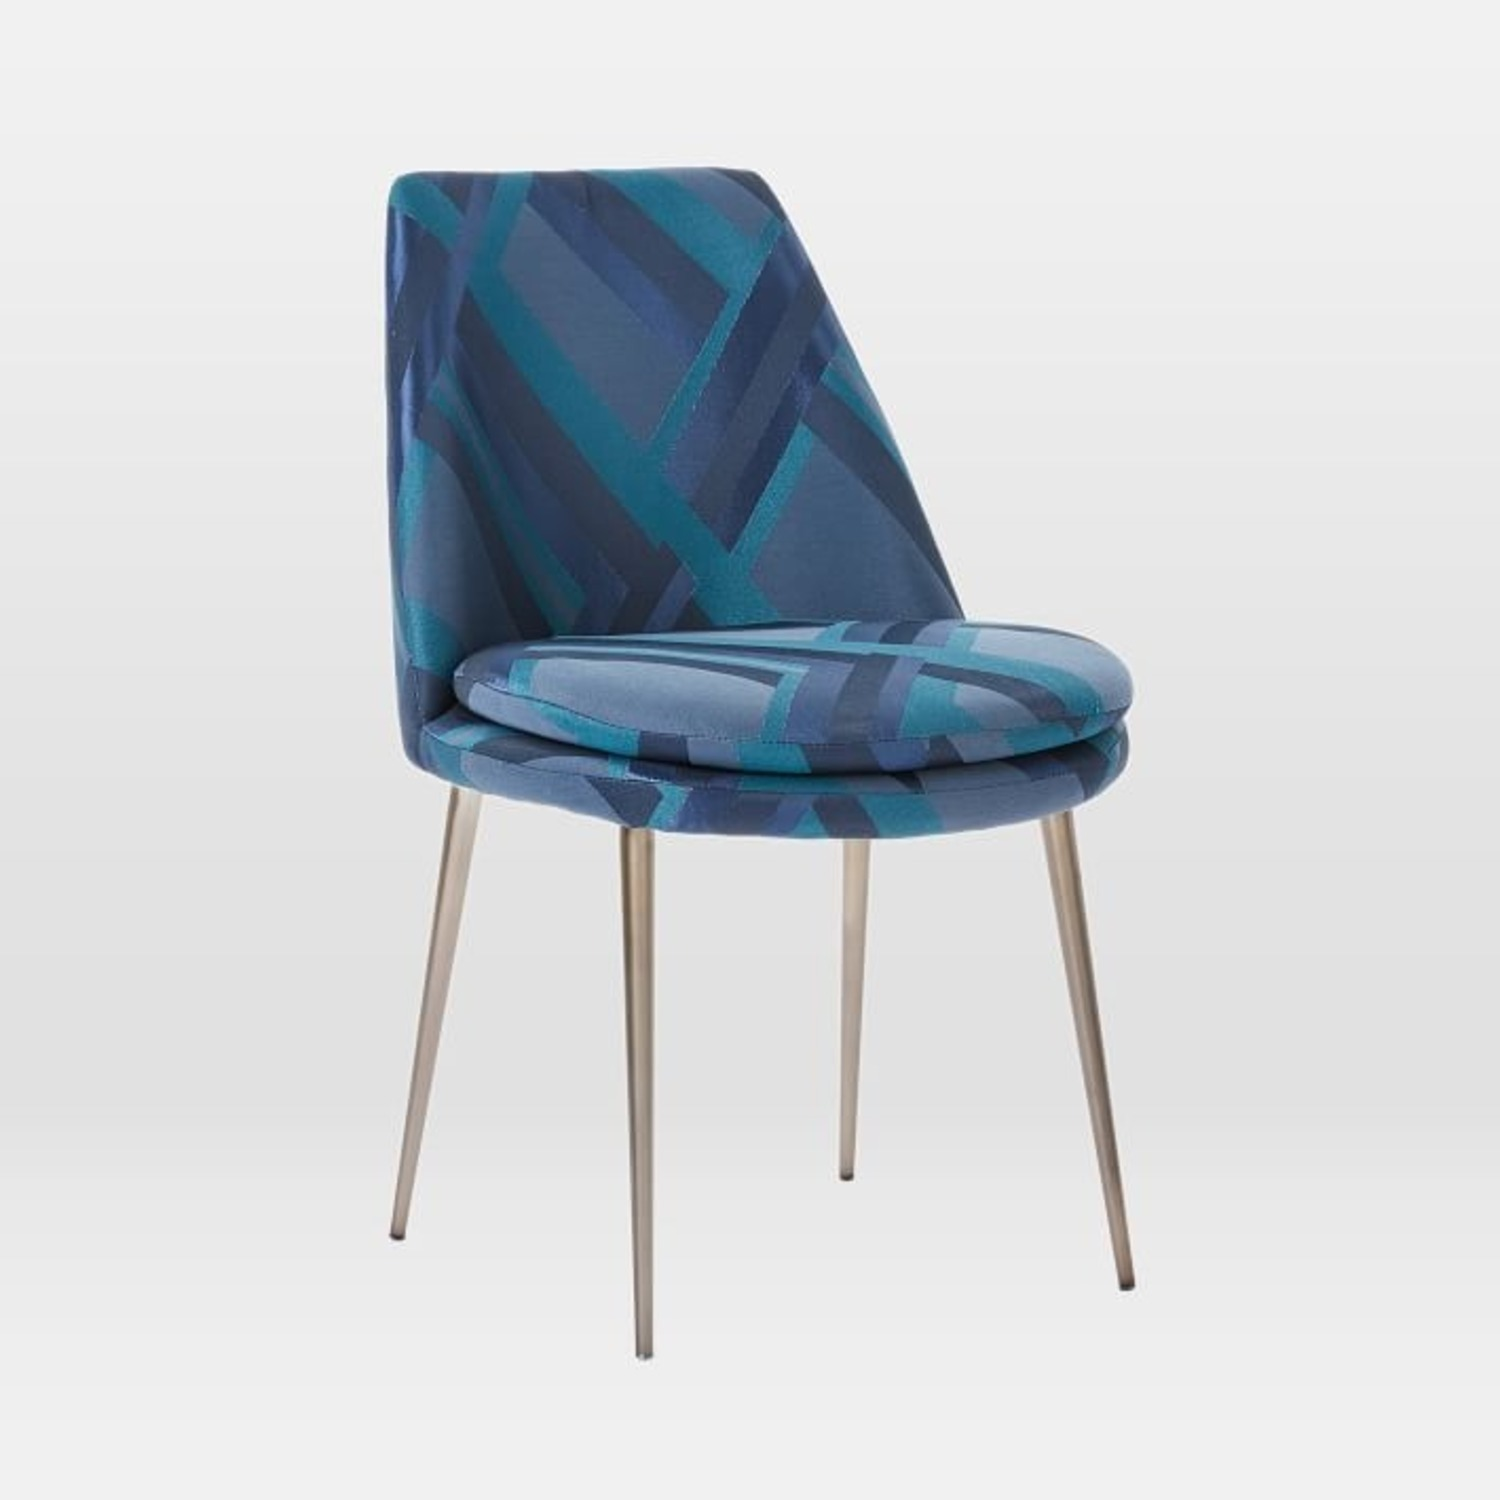 West Elm Finley Low Back Dining Chair - image-2